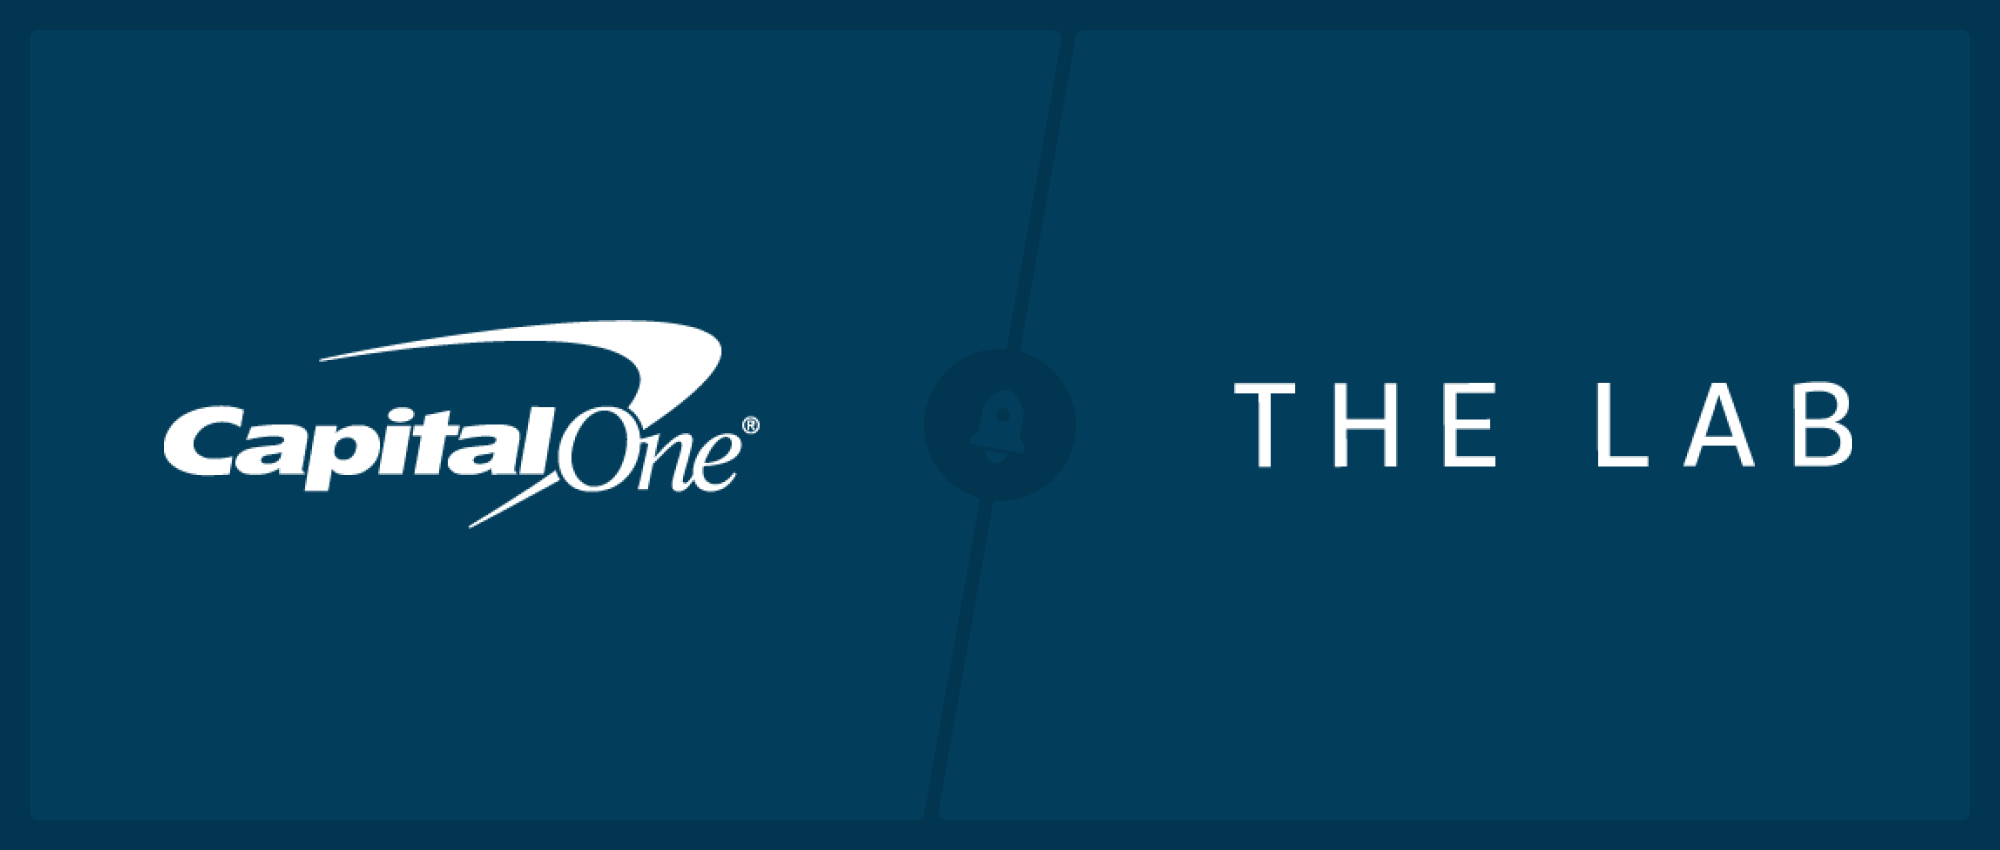 Capital One's The Lab: Exploring the intersection of emerging technology and finance.